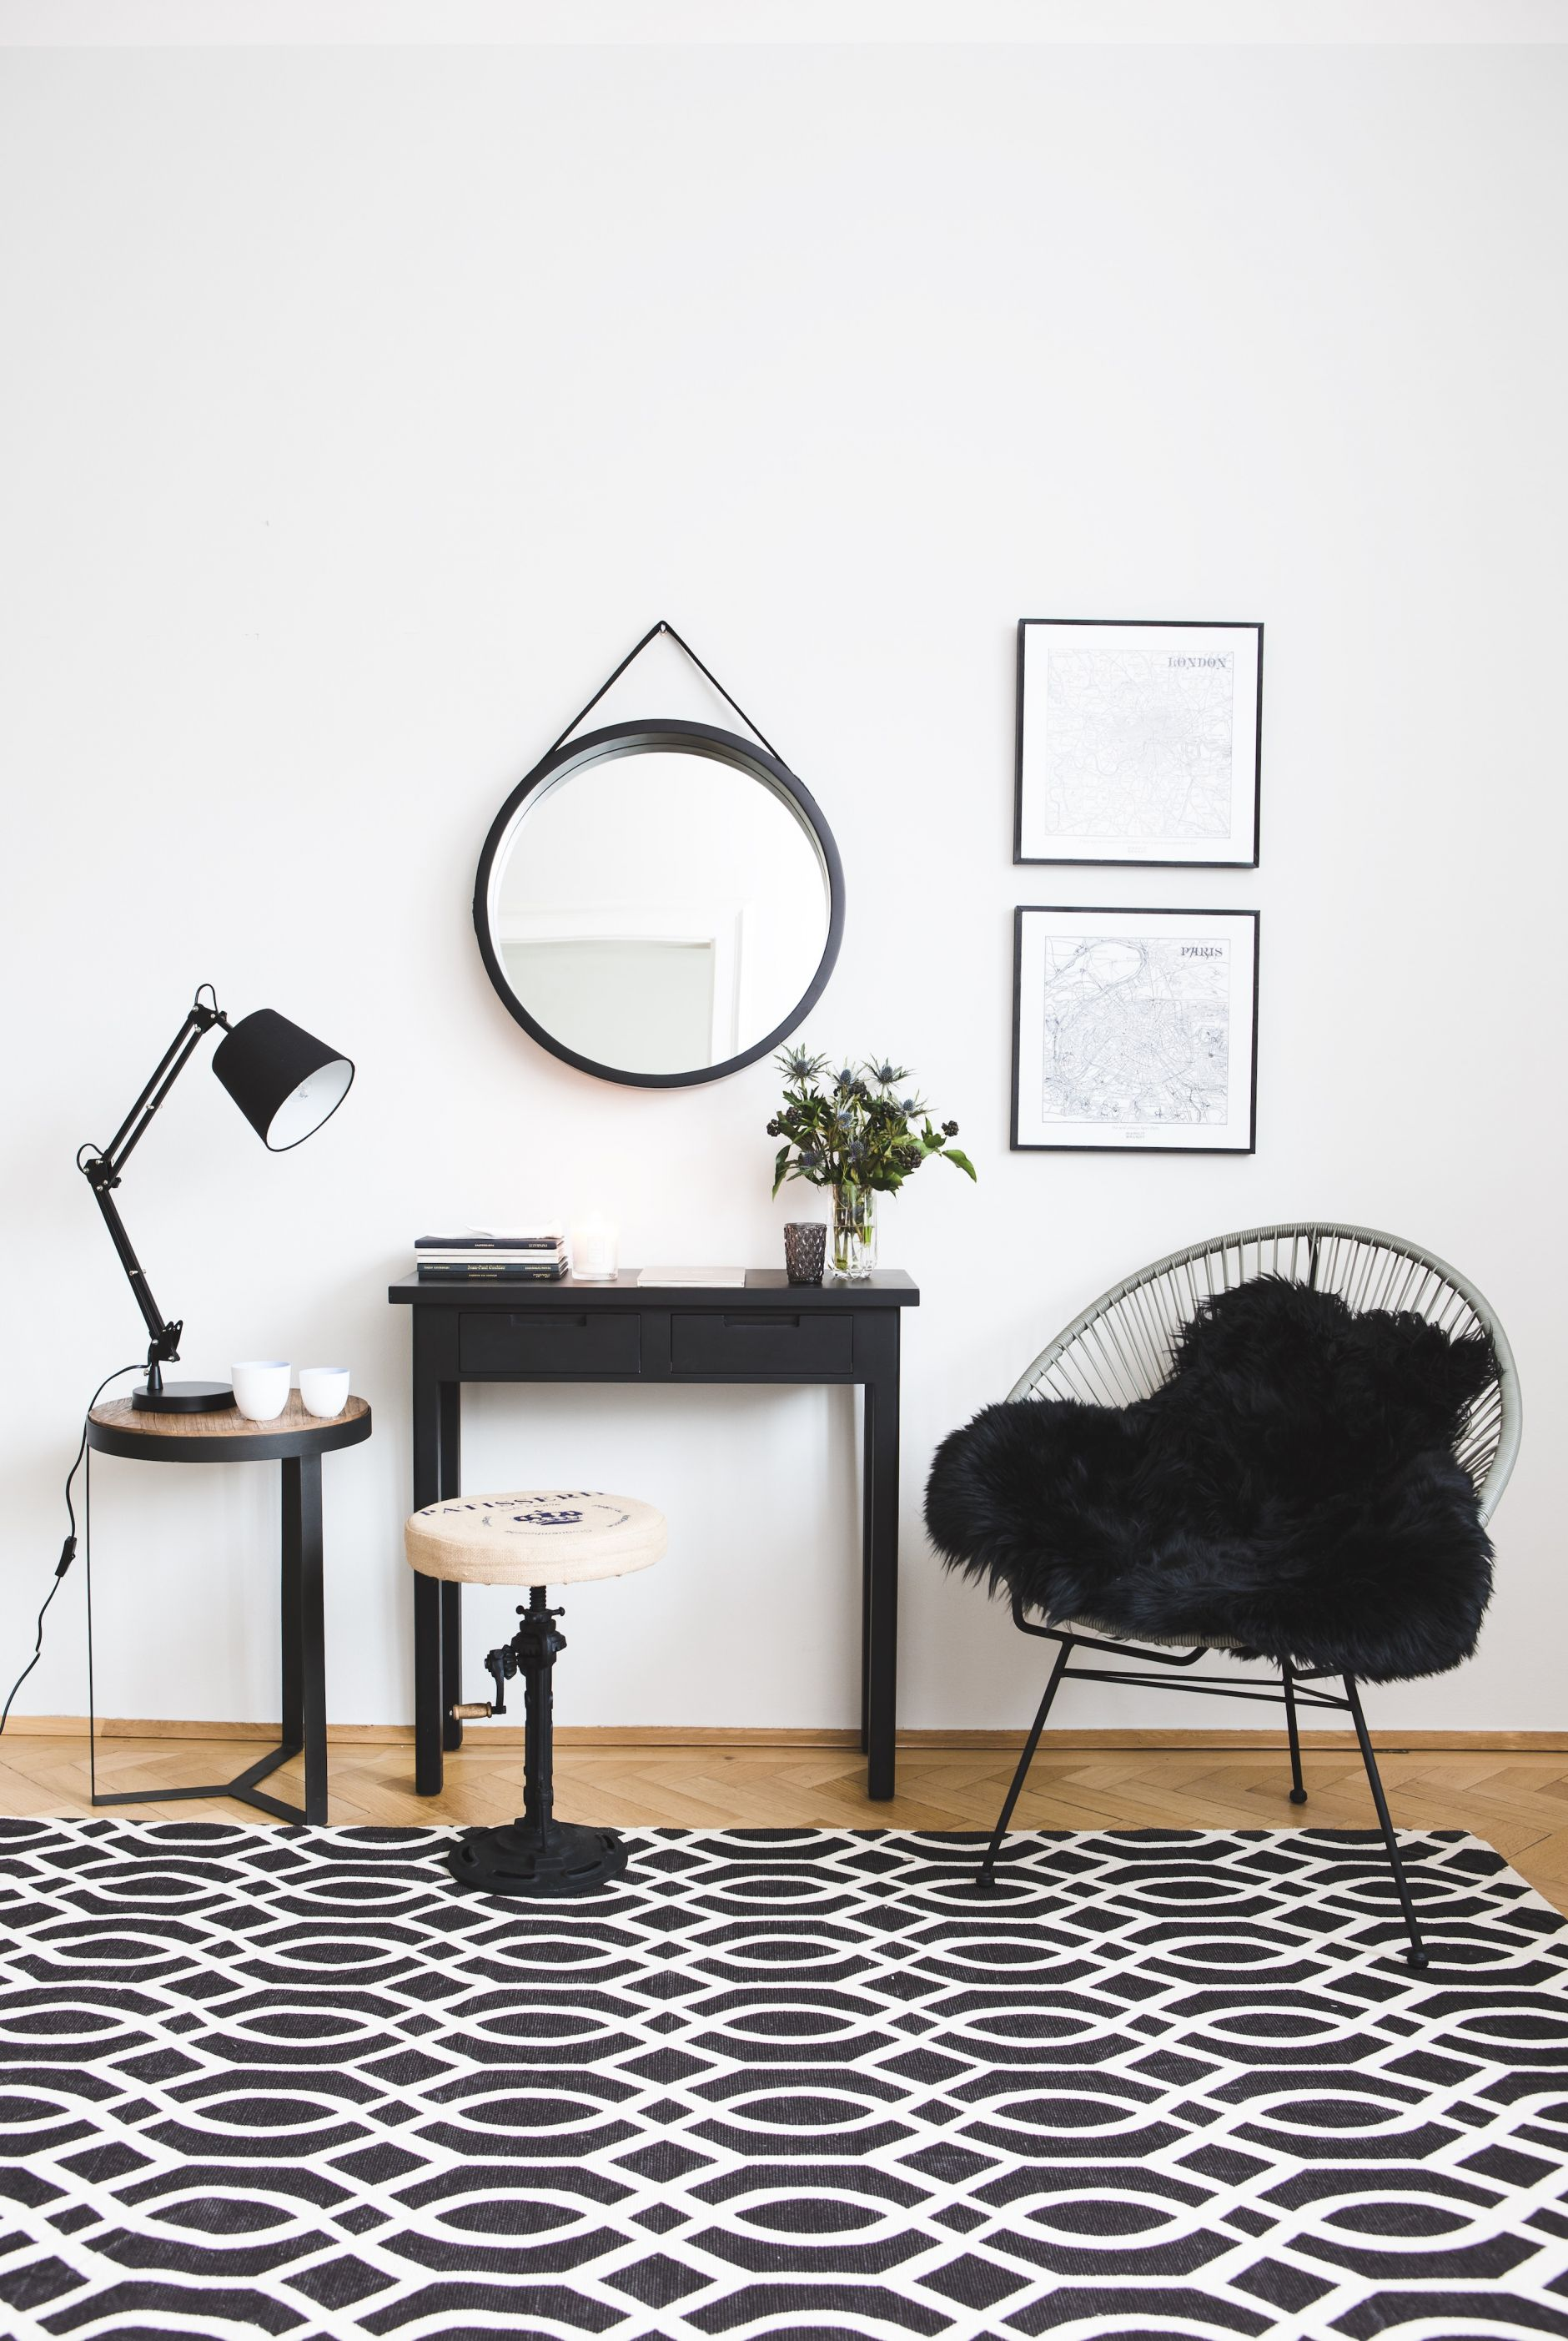 BLACK AND WHITE CONTEMPORARY HOME DECORATION - DISI COUTUREDISI COUTURE